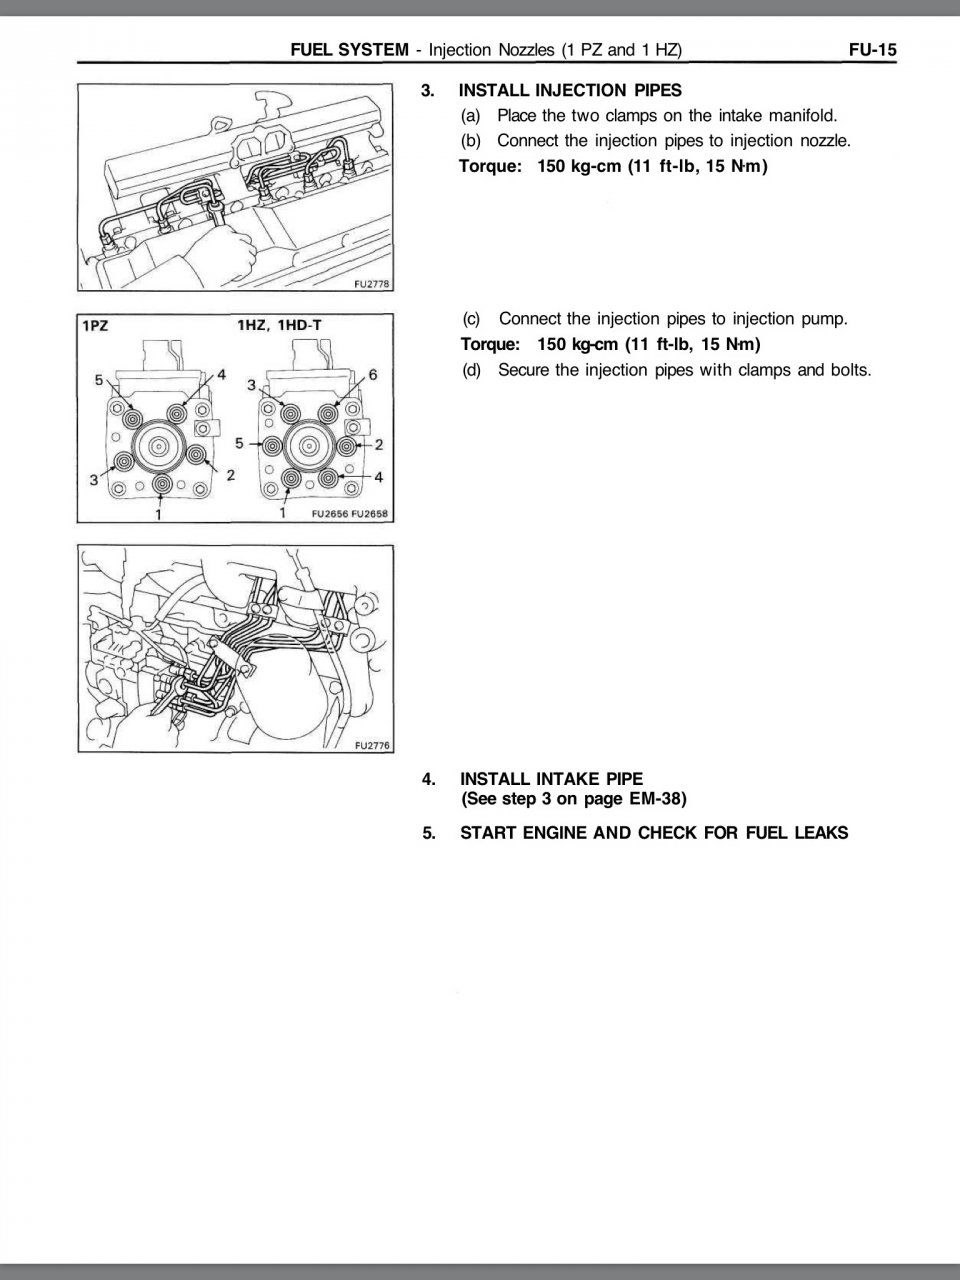 1hz Injection Pump Firing Order Ih8mud Forum Iveco Engine Fuel System Diagrams Image